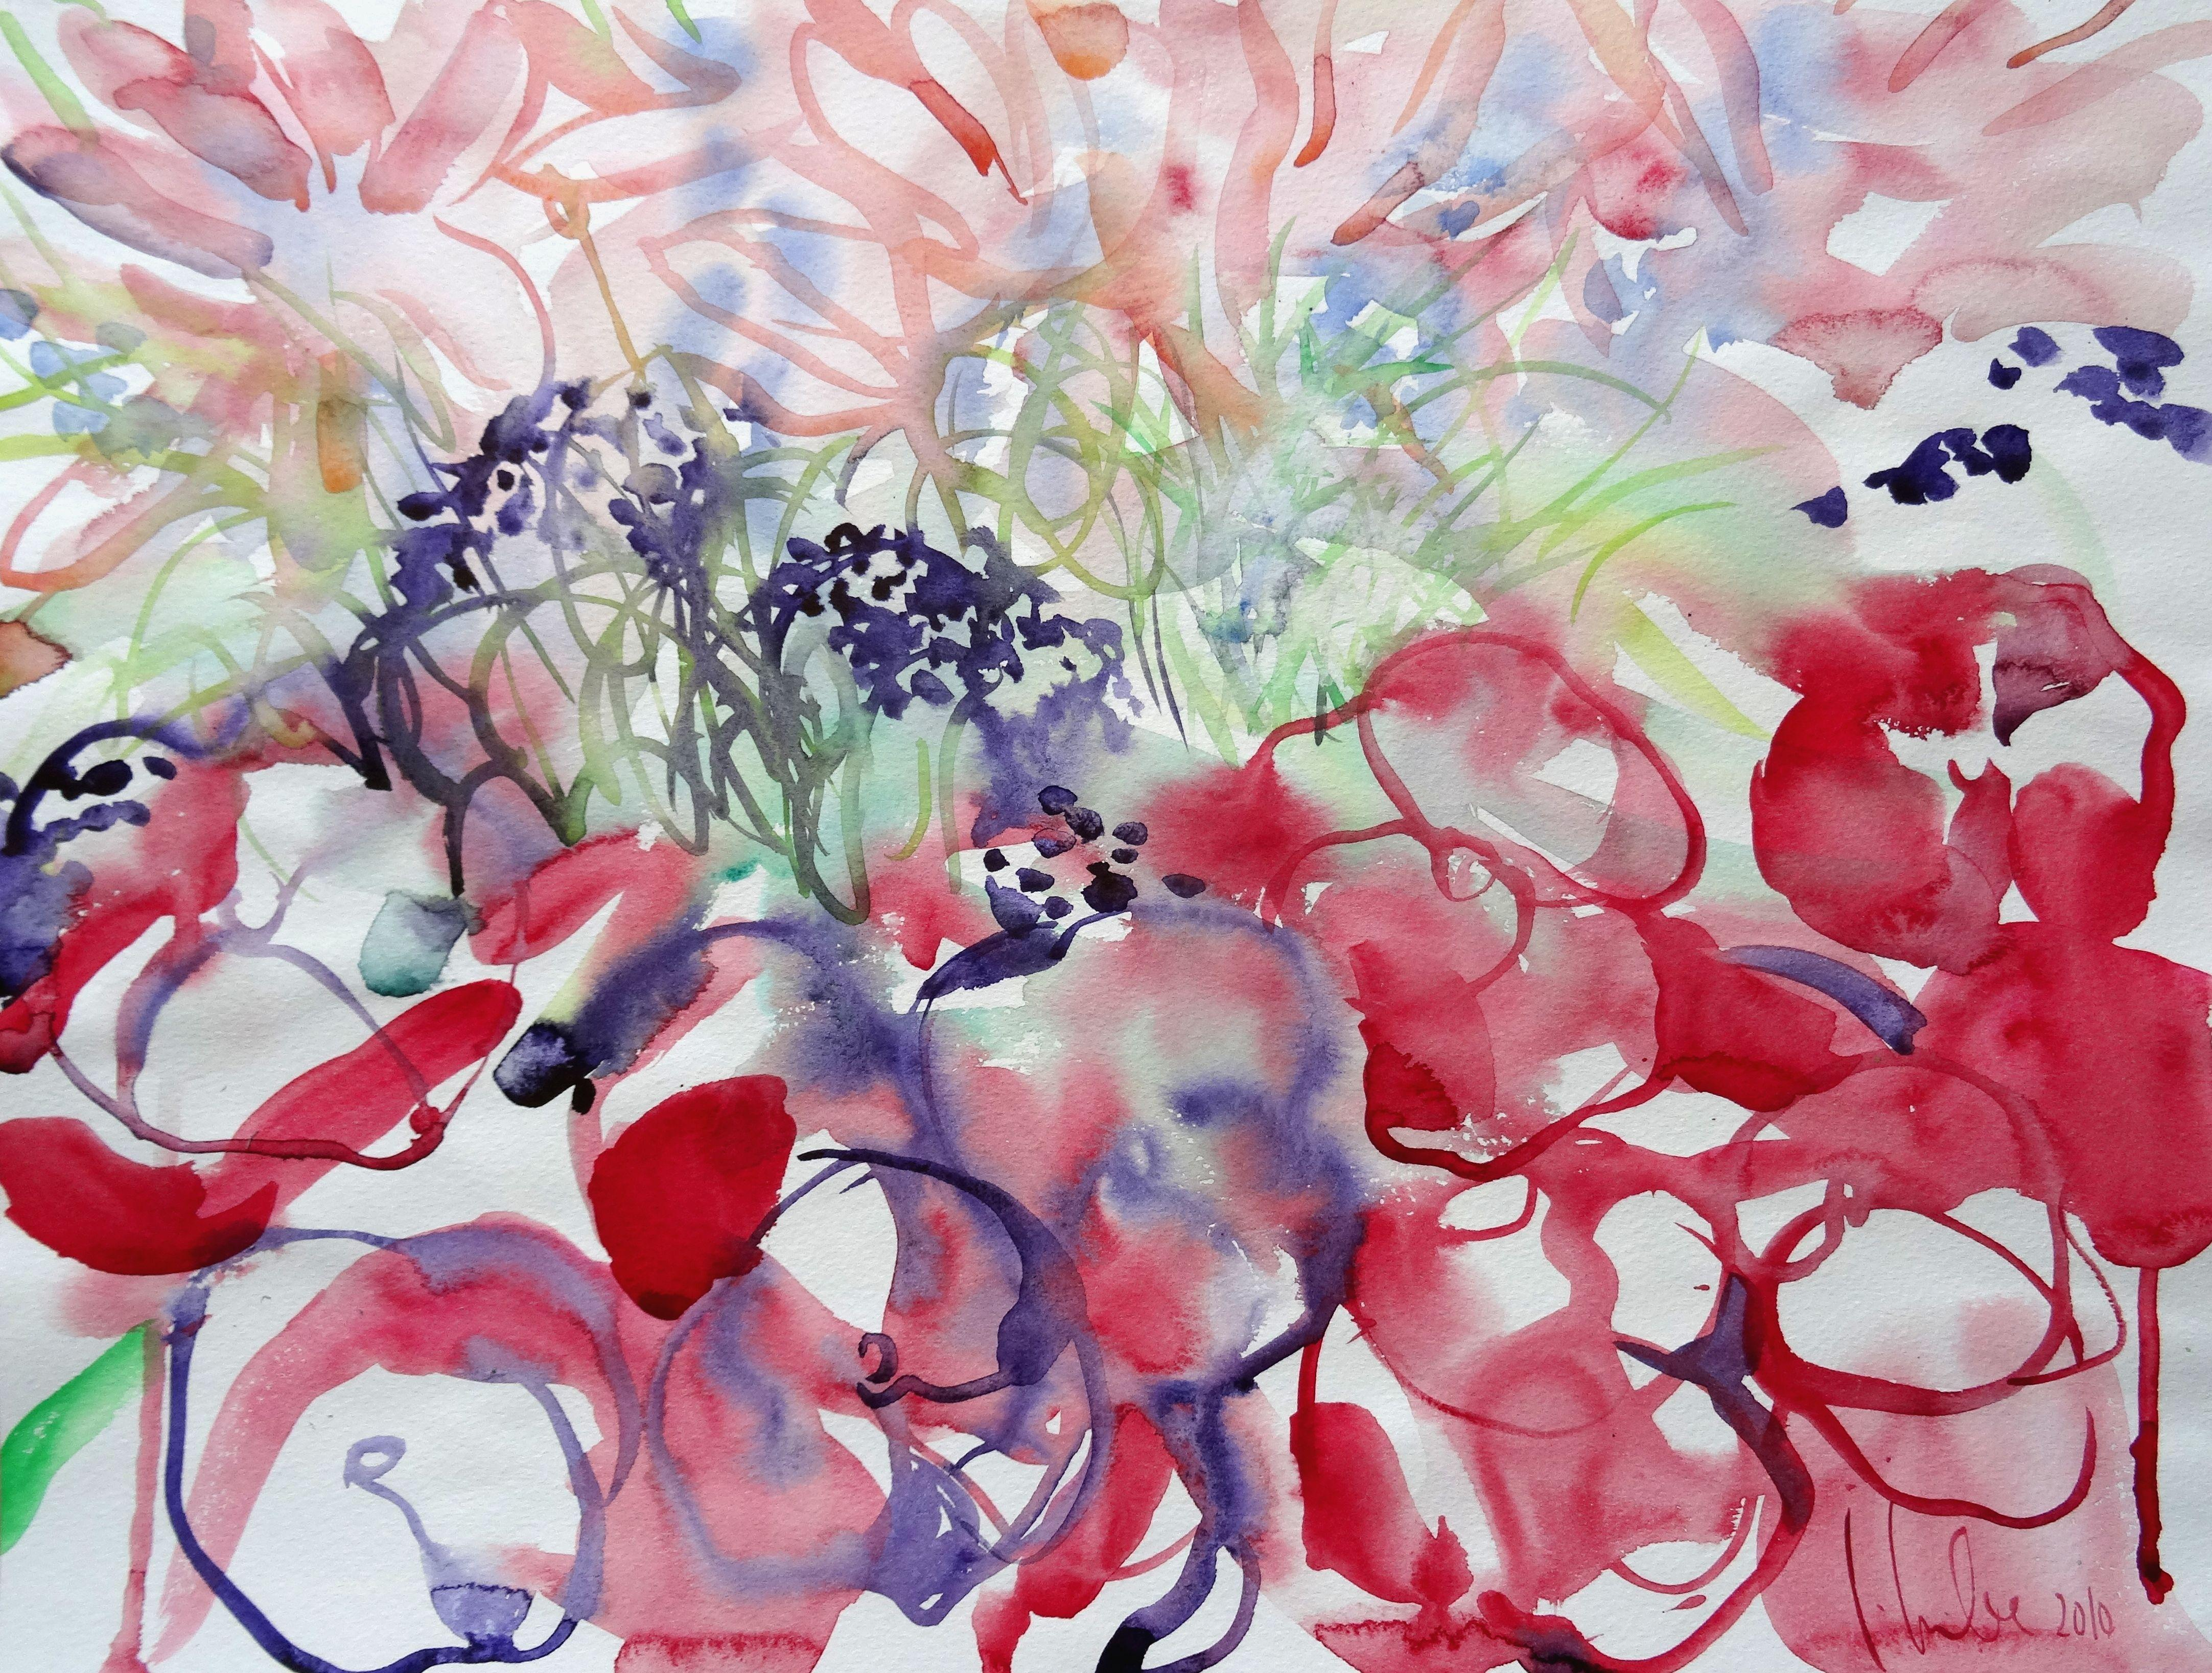 Pink Flowers at Luxembourg Garden Paris. 2010. Watercolor on paper, 38x50 cm